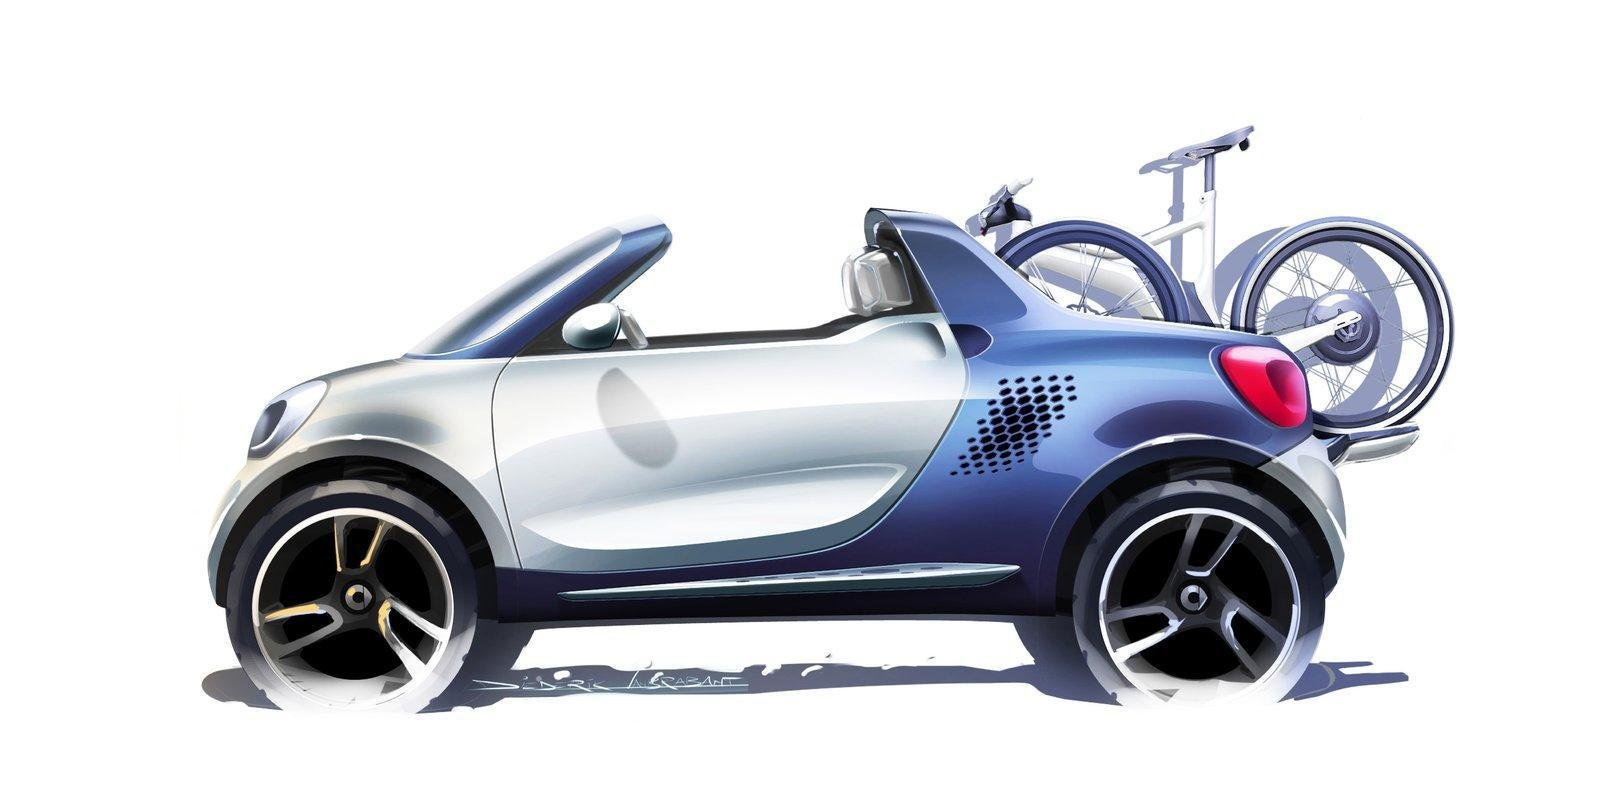 http://pictures.topspeed.com/IMG/crop/201112/smart-for-us-concept-5_1600x0w.jpg